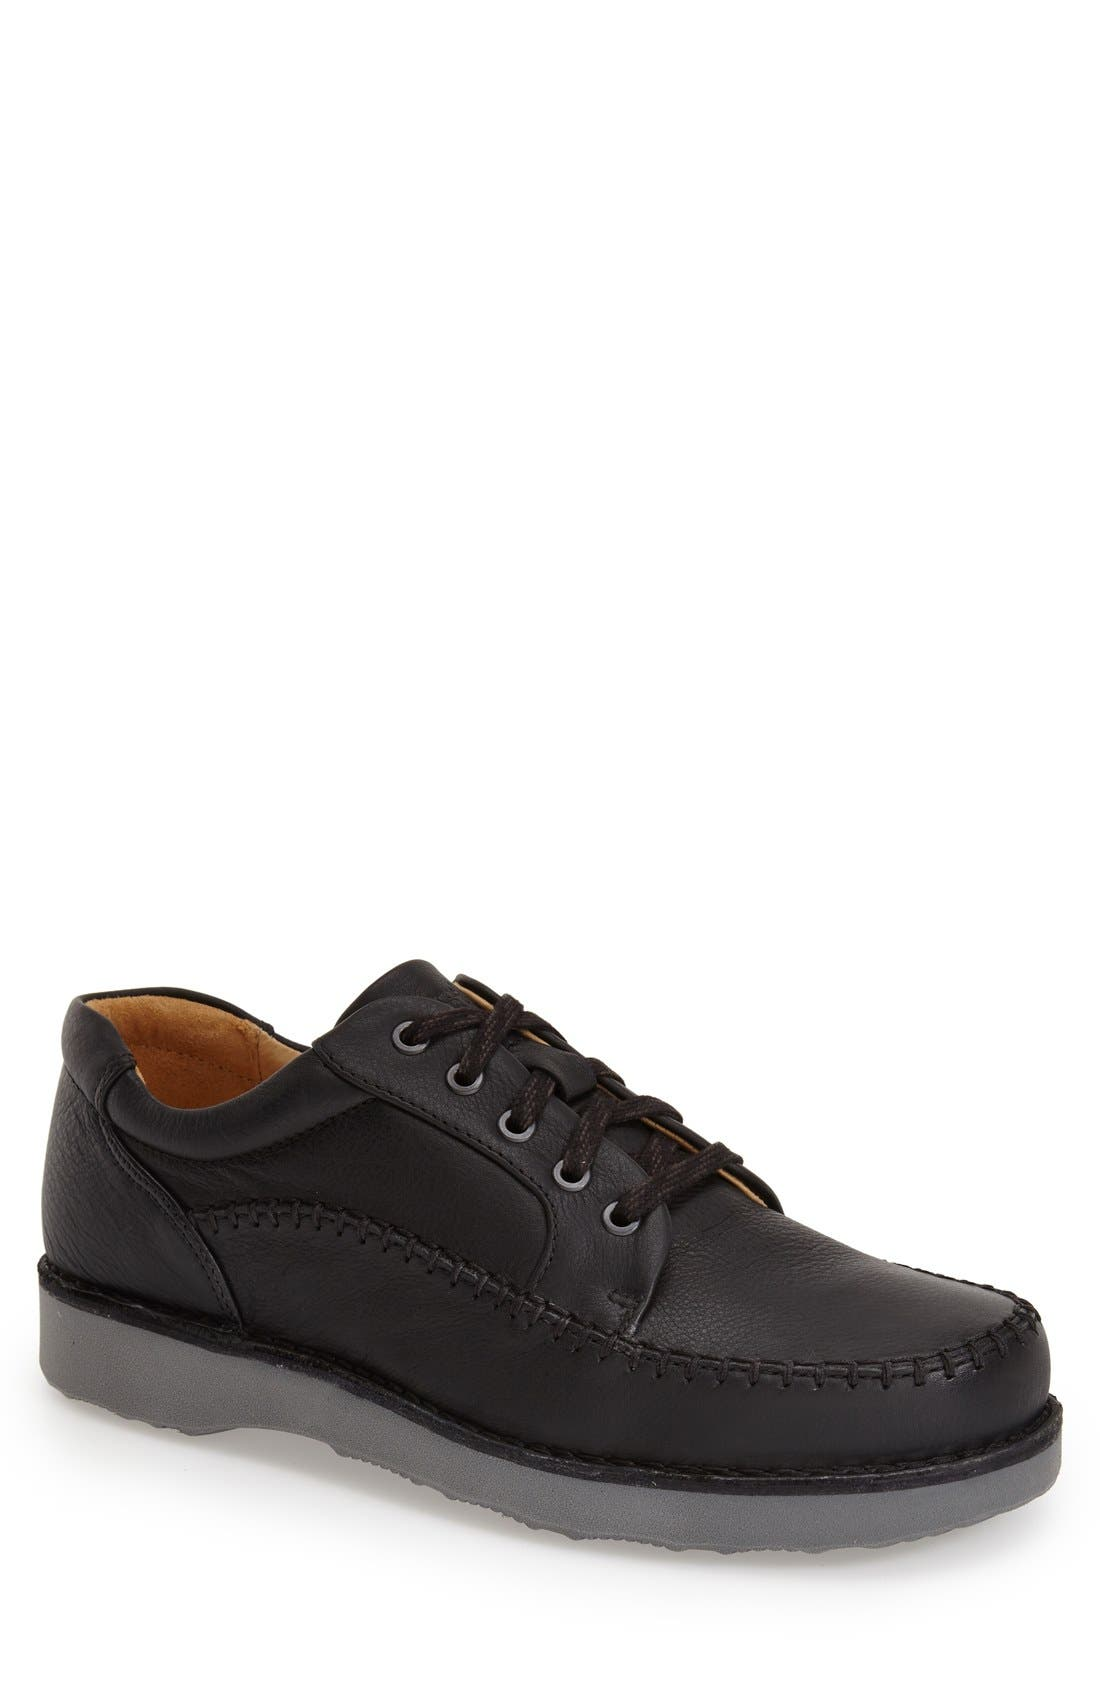 'Get-Up' Moc Toe Derby,                             Main thumbnail 1, color,                             Black Leather